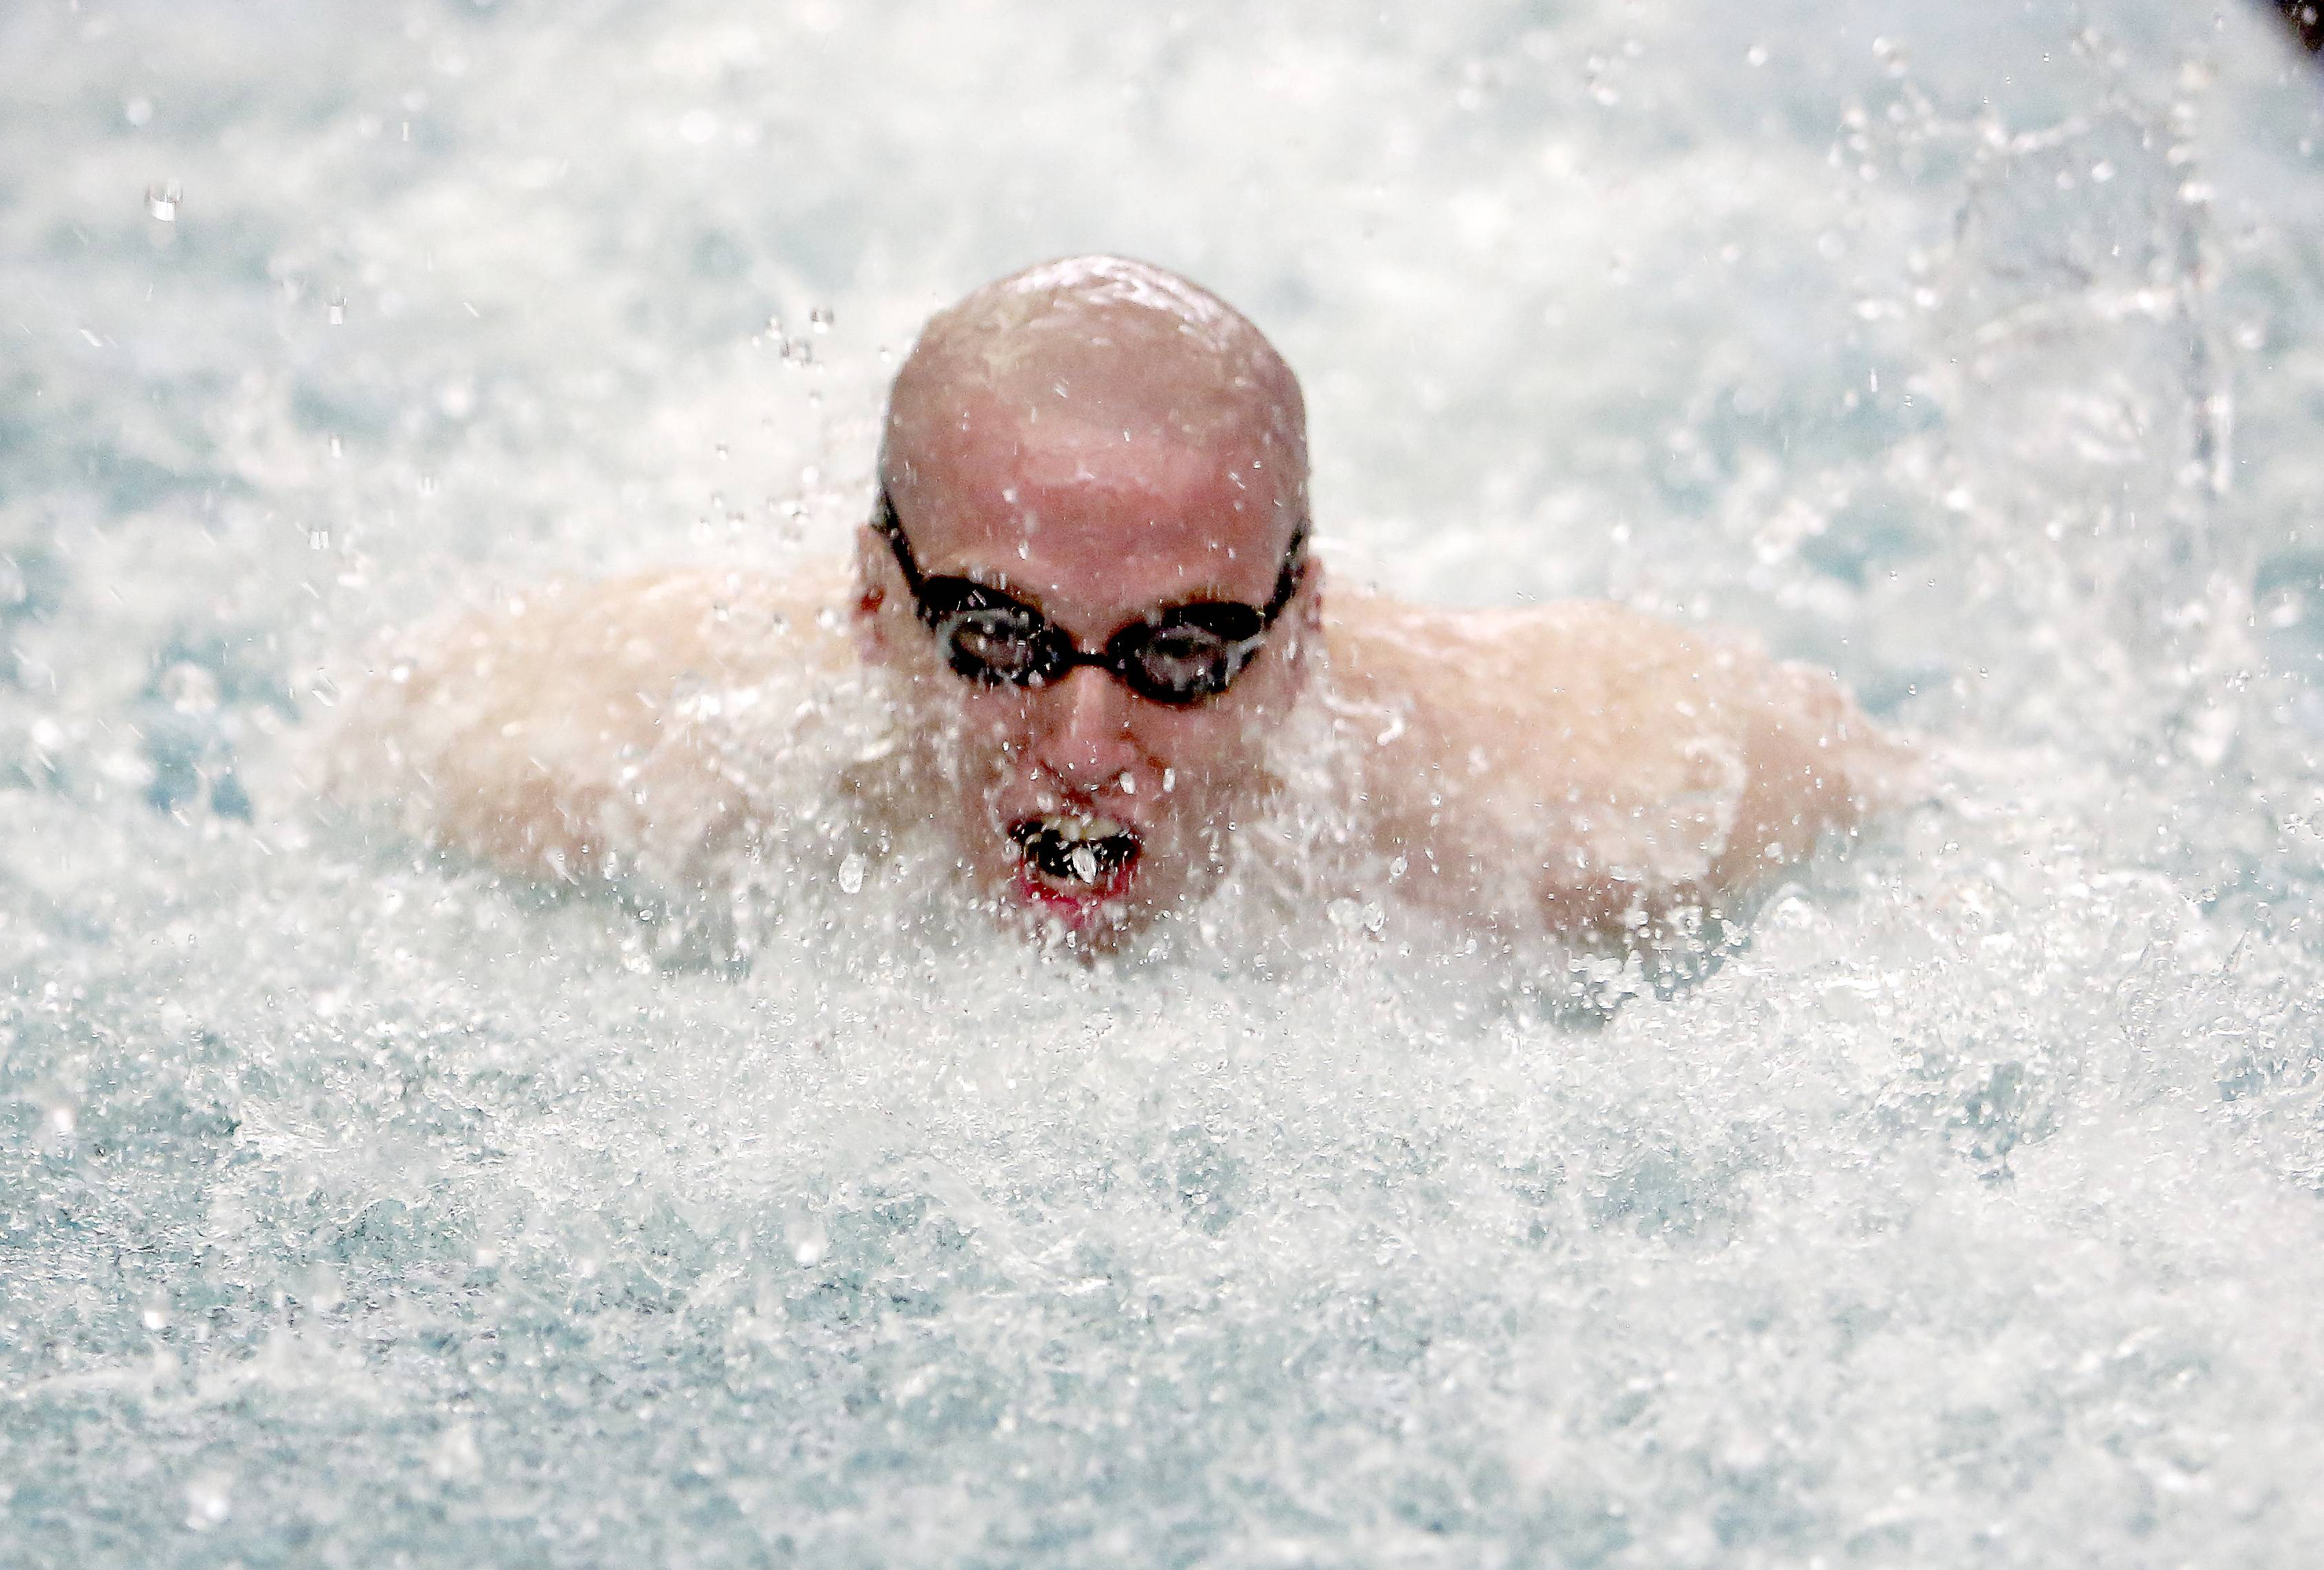 St. Charles North's Timothy Steele, competes in the 200 yard medley relay during the 2014 Boys Swimming and Diving IHSA Sectional Championships Saturday at St. Charles North High School in St. Charles.